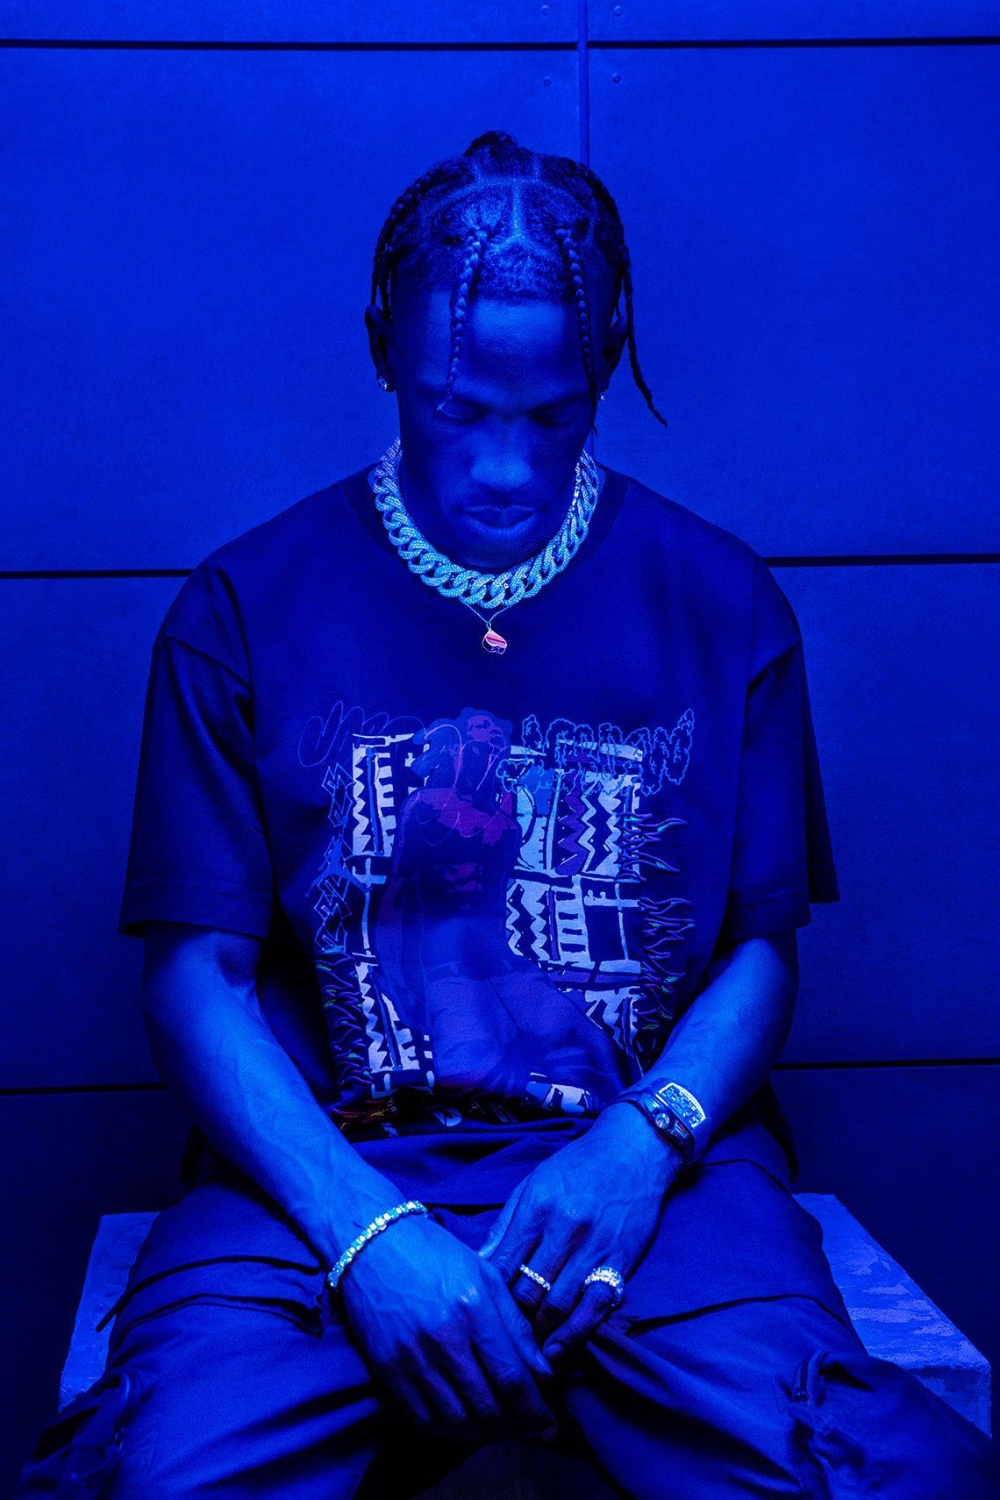 Travis Scott On Twitter In 2020 Travis Scott Outfits Travis Scott Iphone Wallpaper Travis Scott Wallpapers